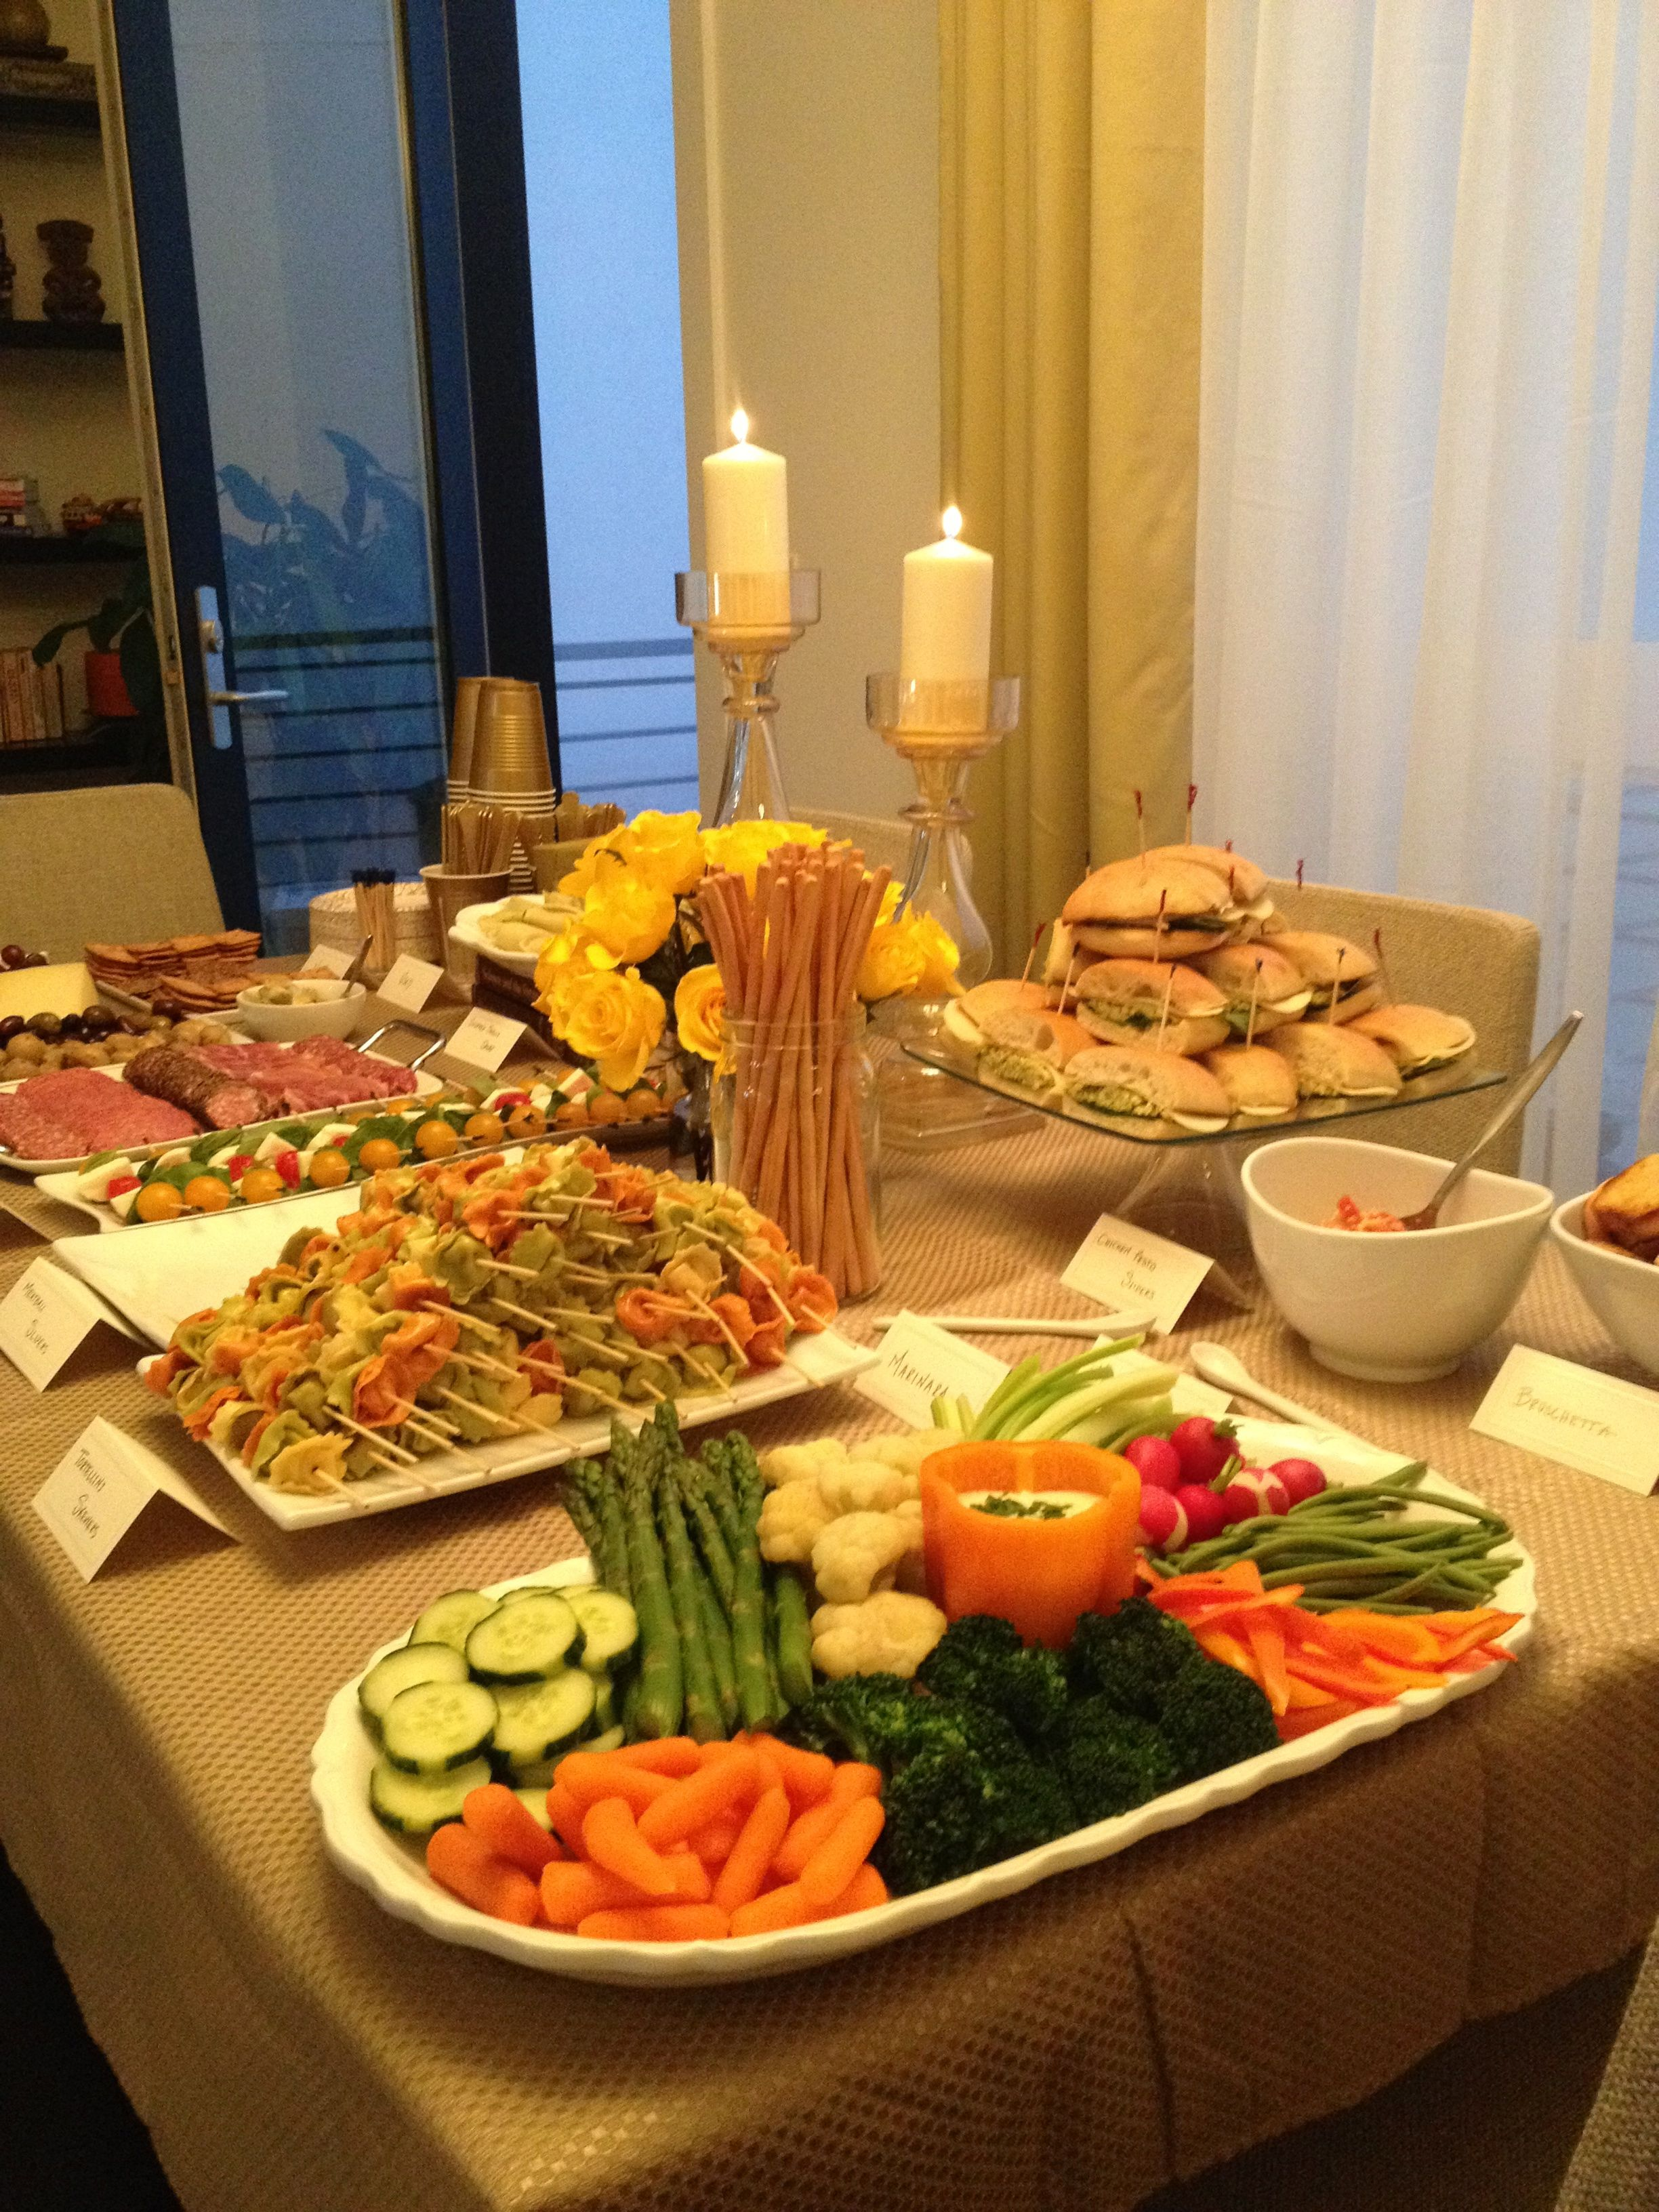 House warming party denver finger food ideas also pinterest rh hu